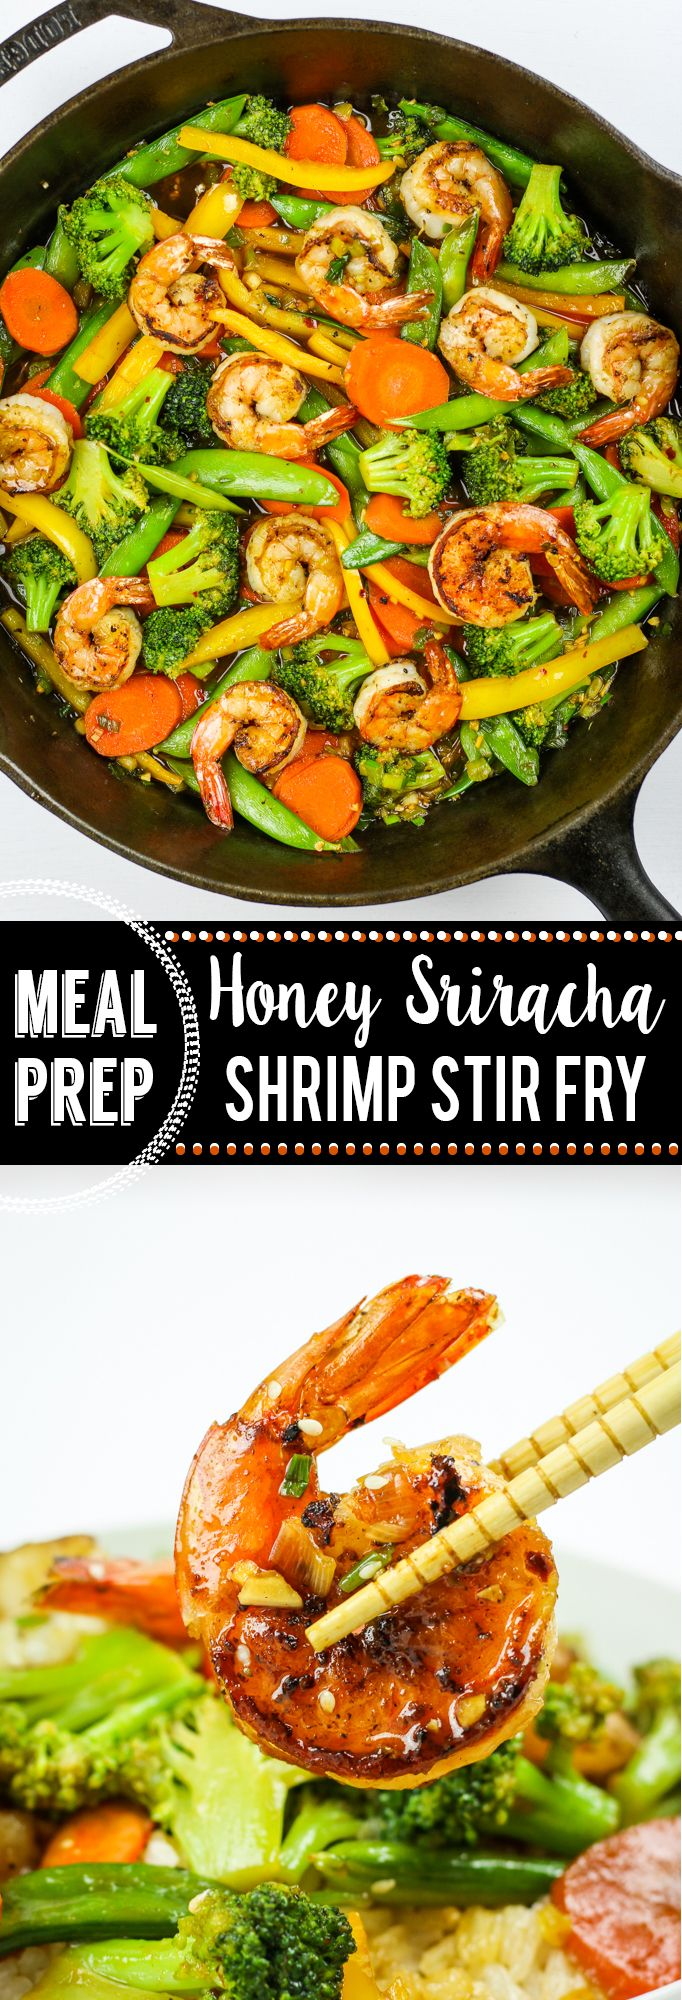 Honey Sriracha Shrimp Stir Fry Meal Prep - The EASIEST stir fry meal prep I've ever made. Simple sauce and simple process. SO much flavor! Broccoli, carrots, snap peas, and bell pepper... or whatever veg you prefer! (AD) @wholesomesweet #mealprep #stirfry #sriracha #honey #shrimp